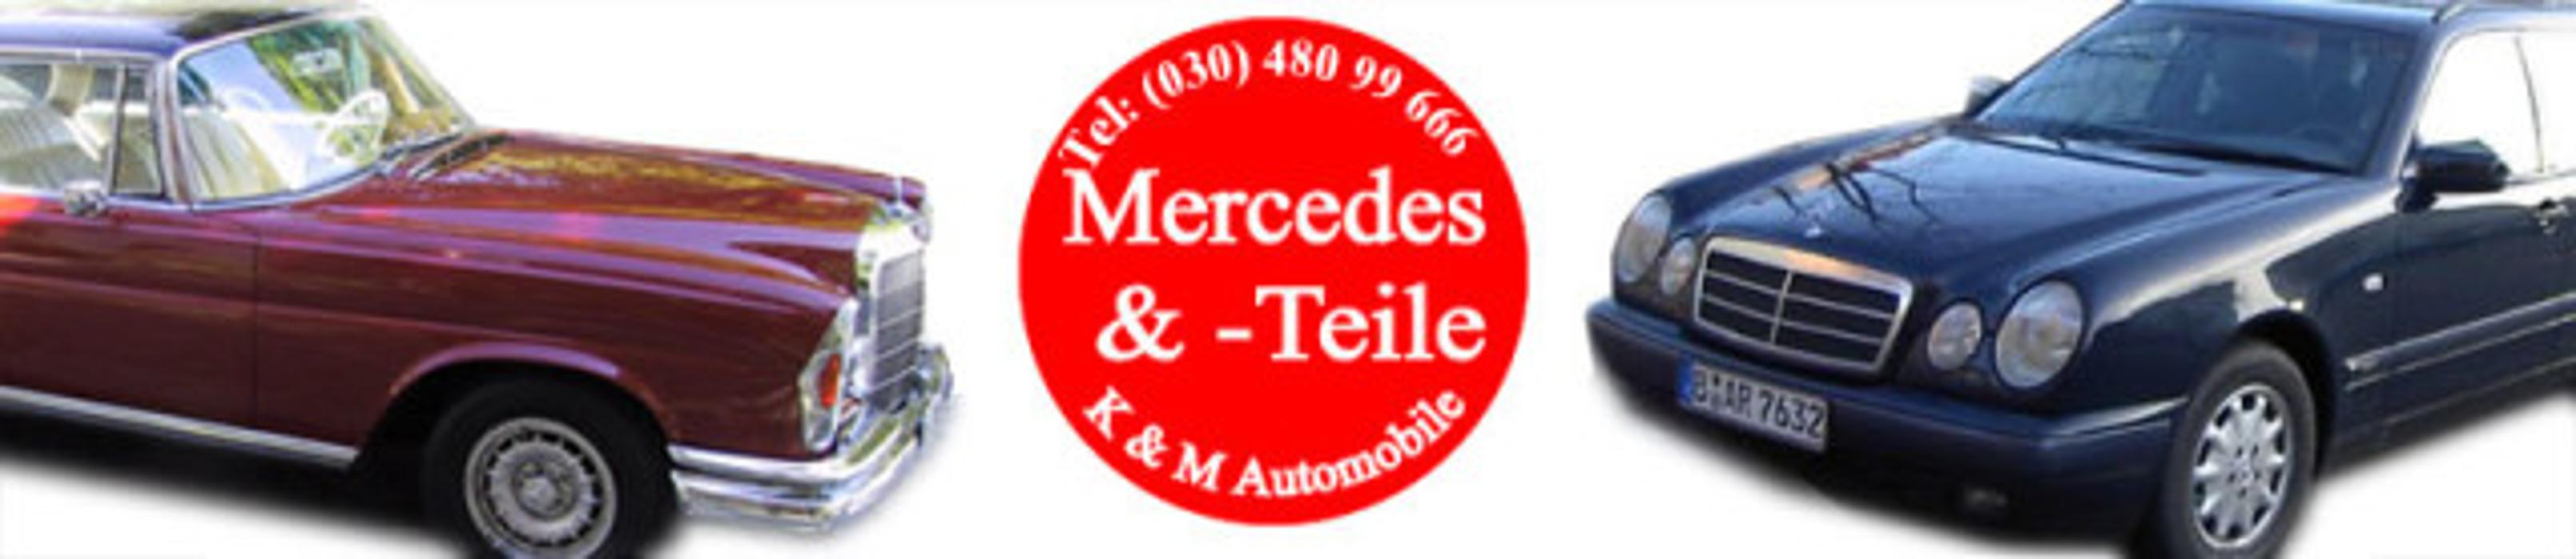 Bild zu K&M Automobile Mercedesteile in Berlin